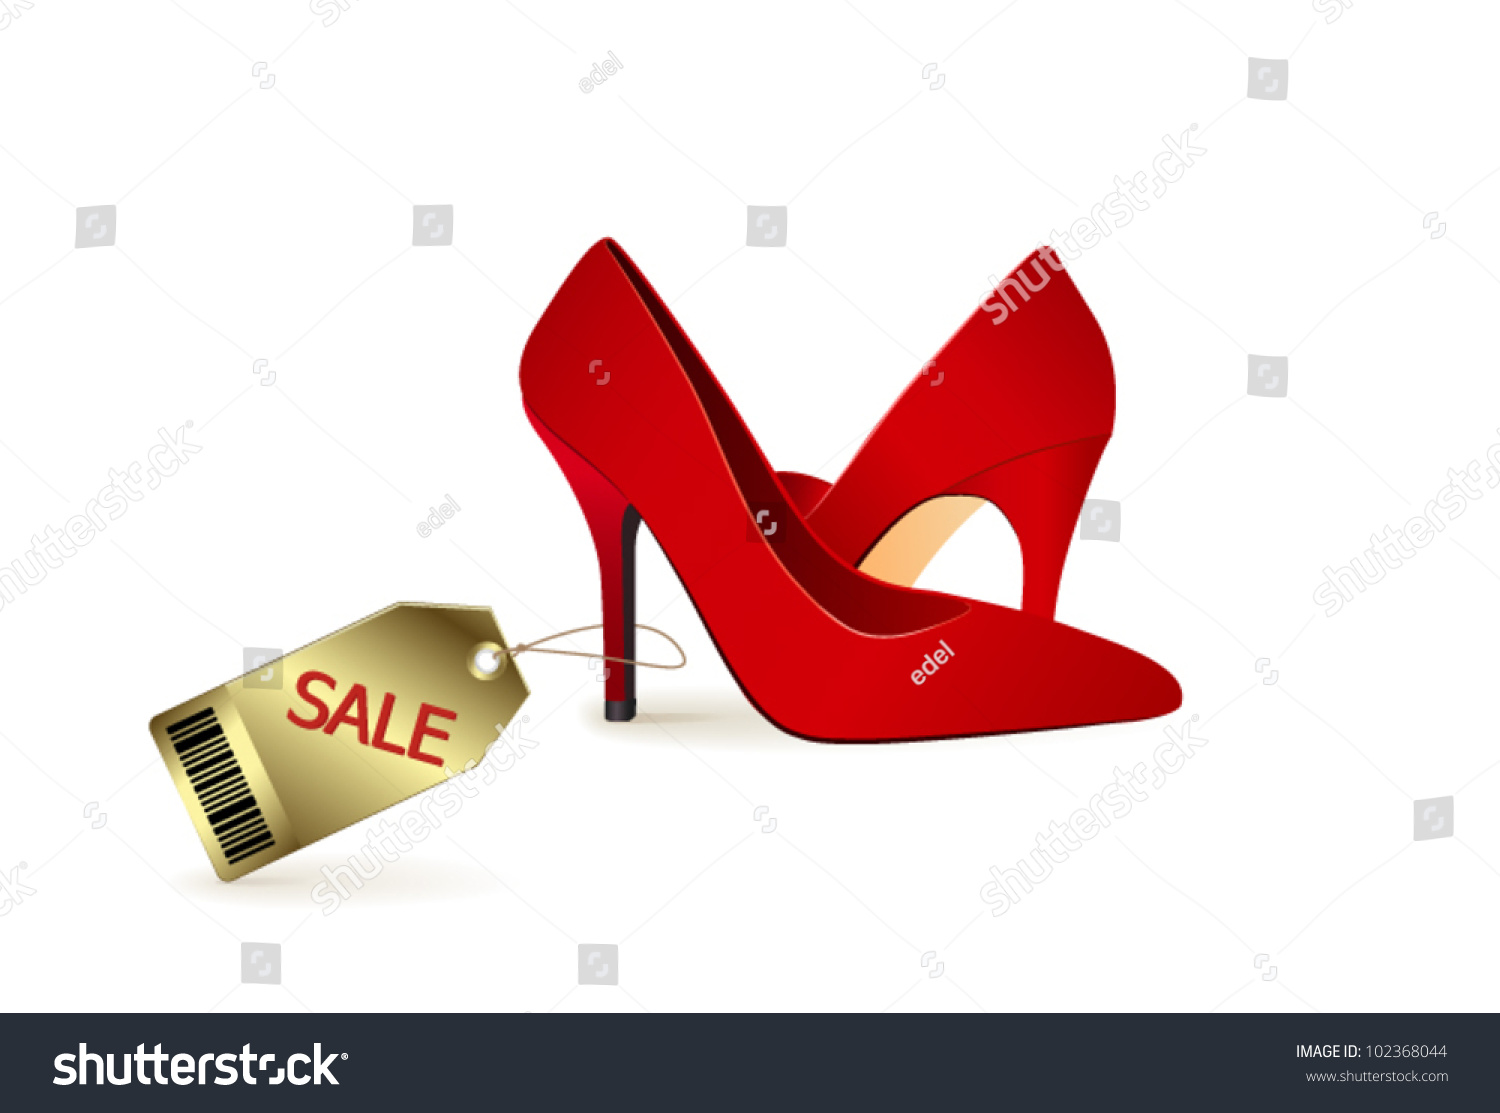 Red High Heel Shoes For Sale